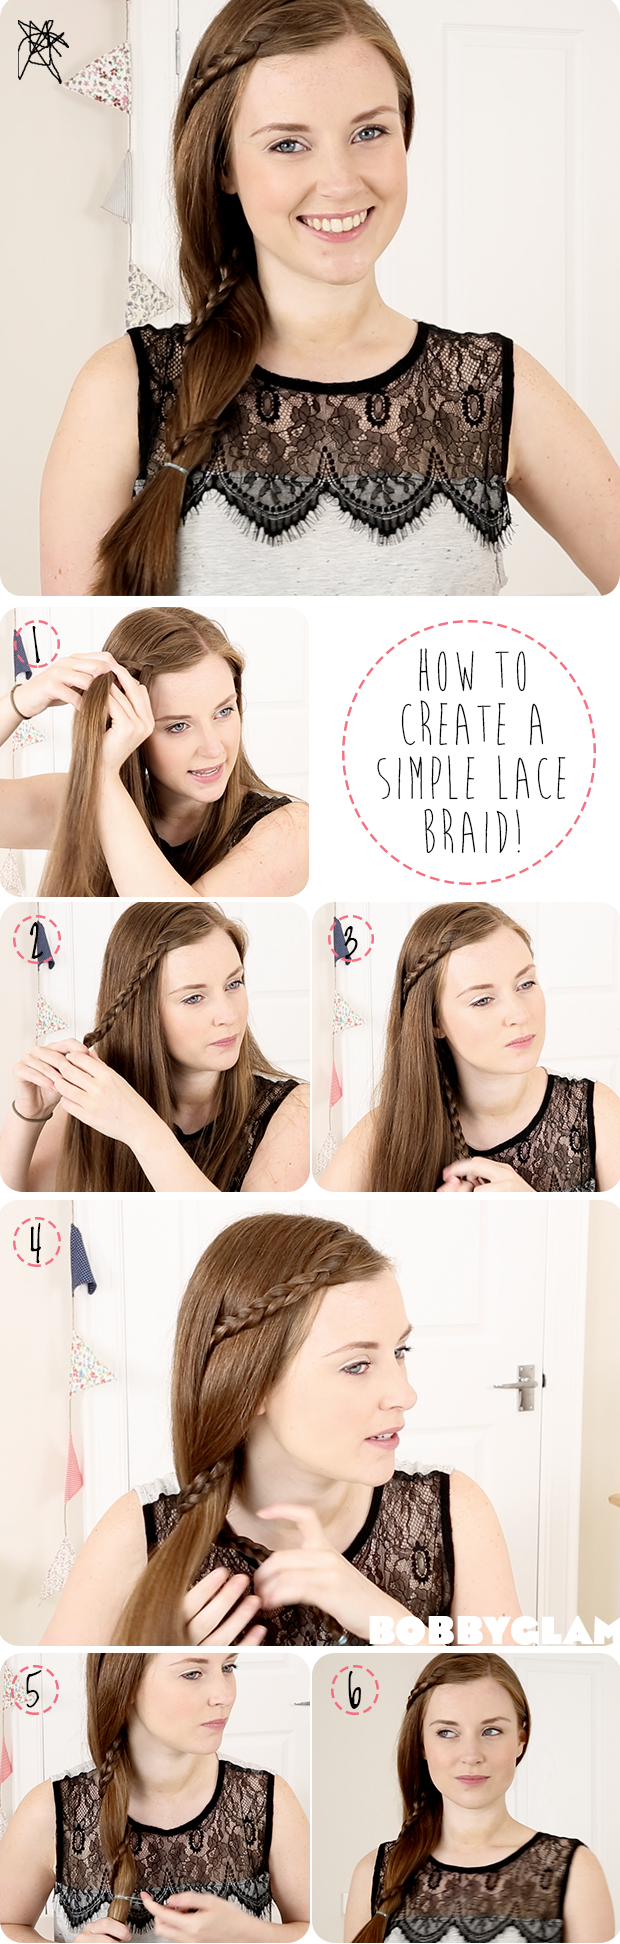 How-to-create-a-simple-lace-braid